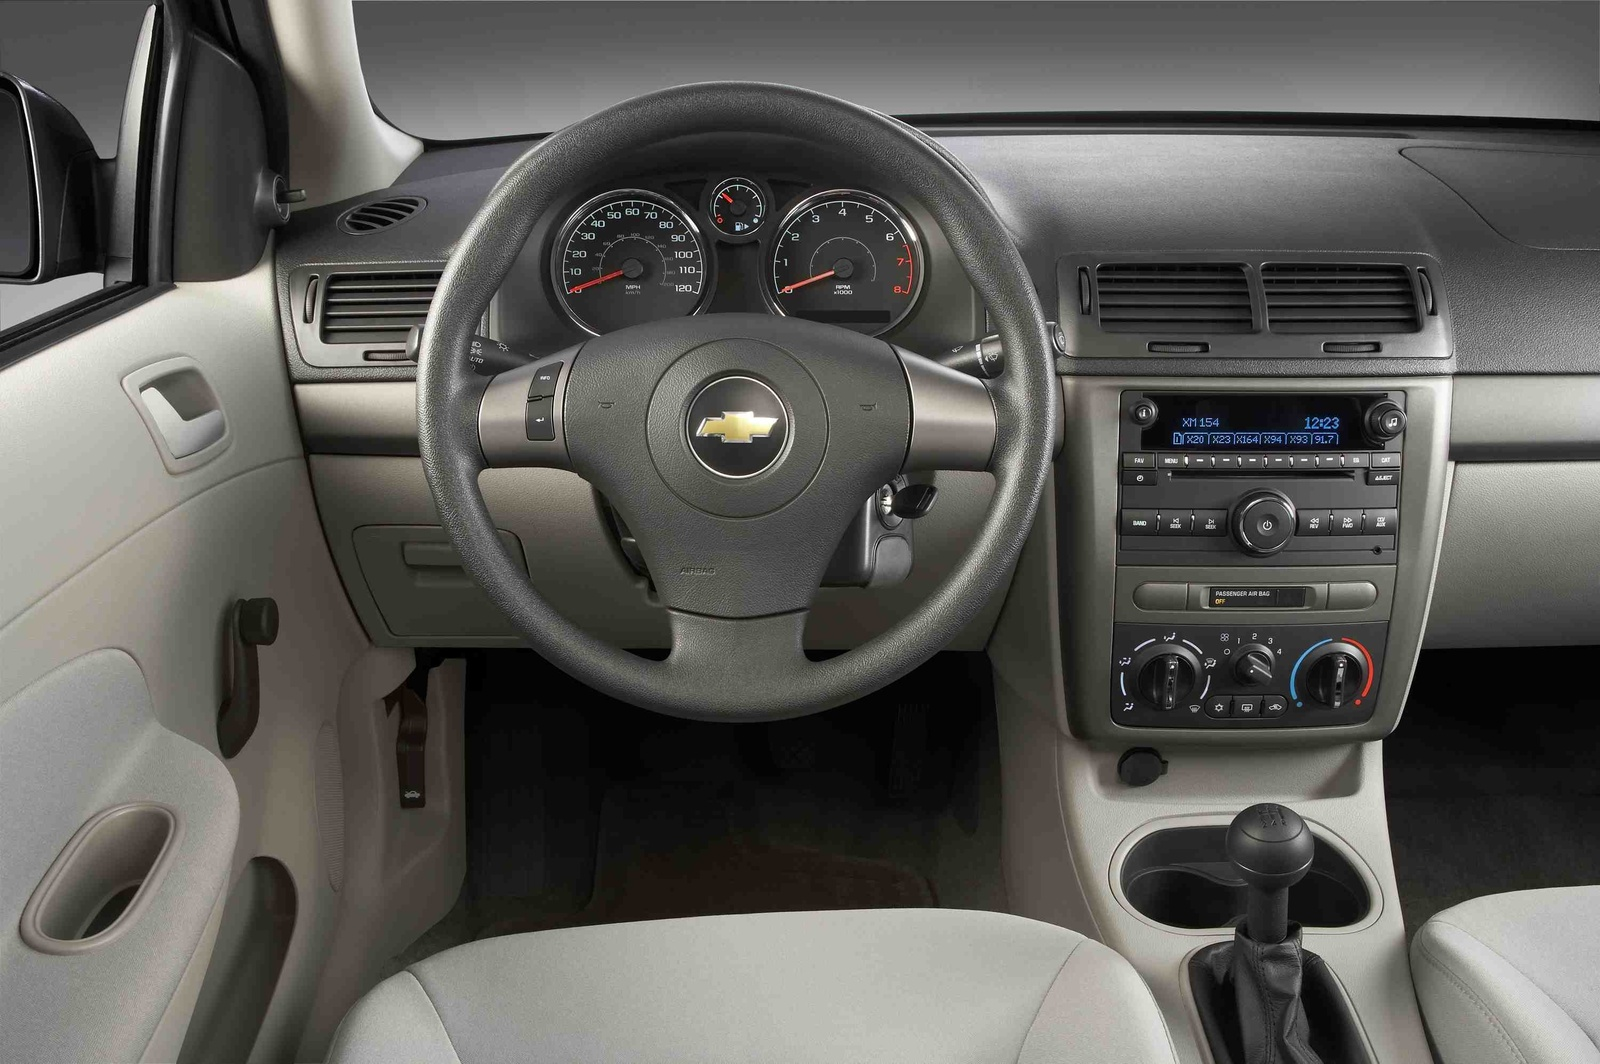 CHEVROLET COBALT interior